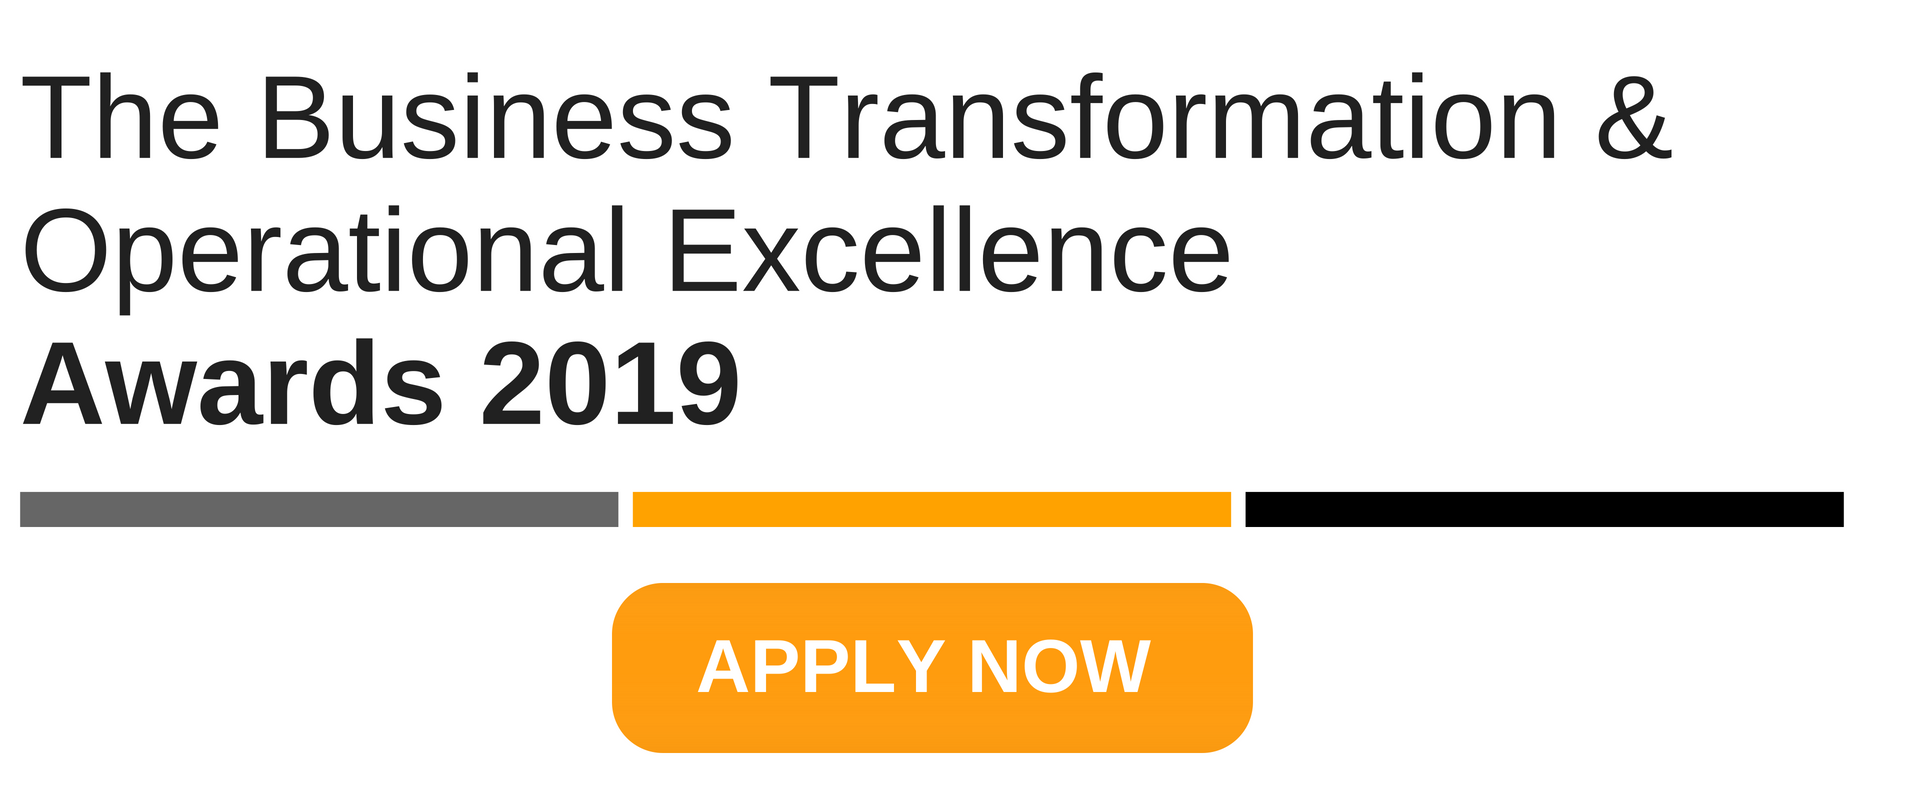 The Business Transformation & Operational Excellence (1)-1.png